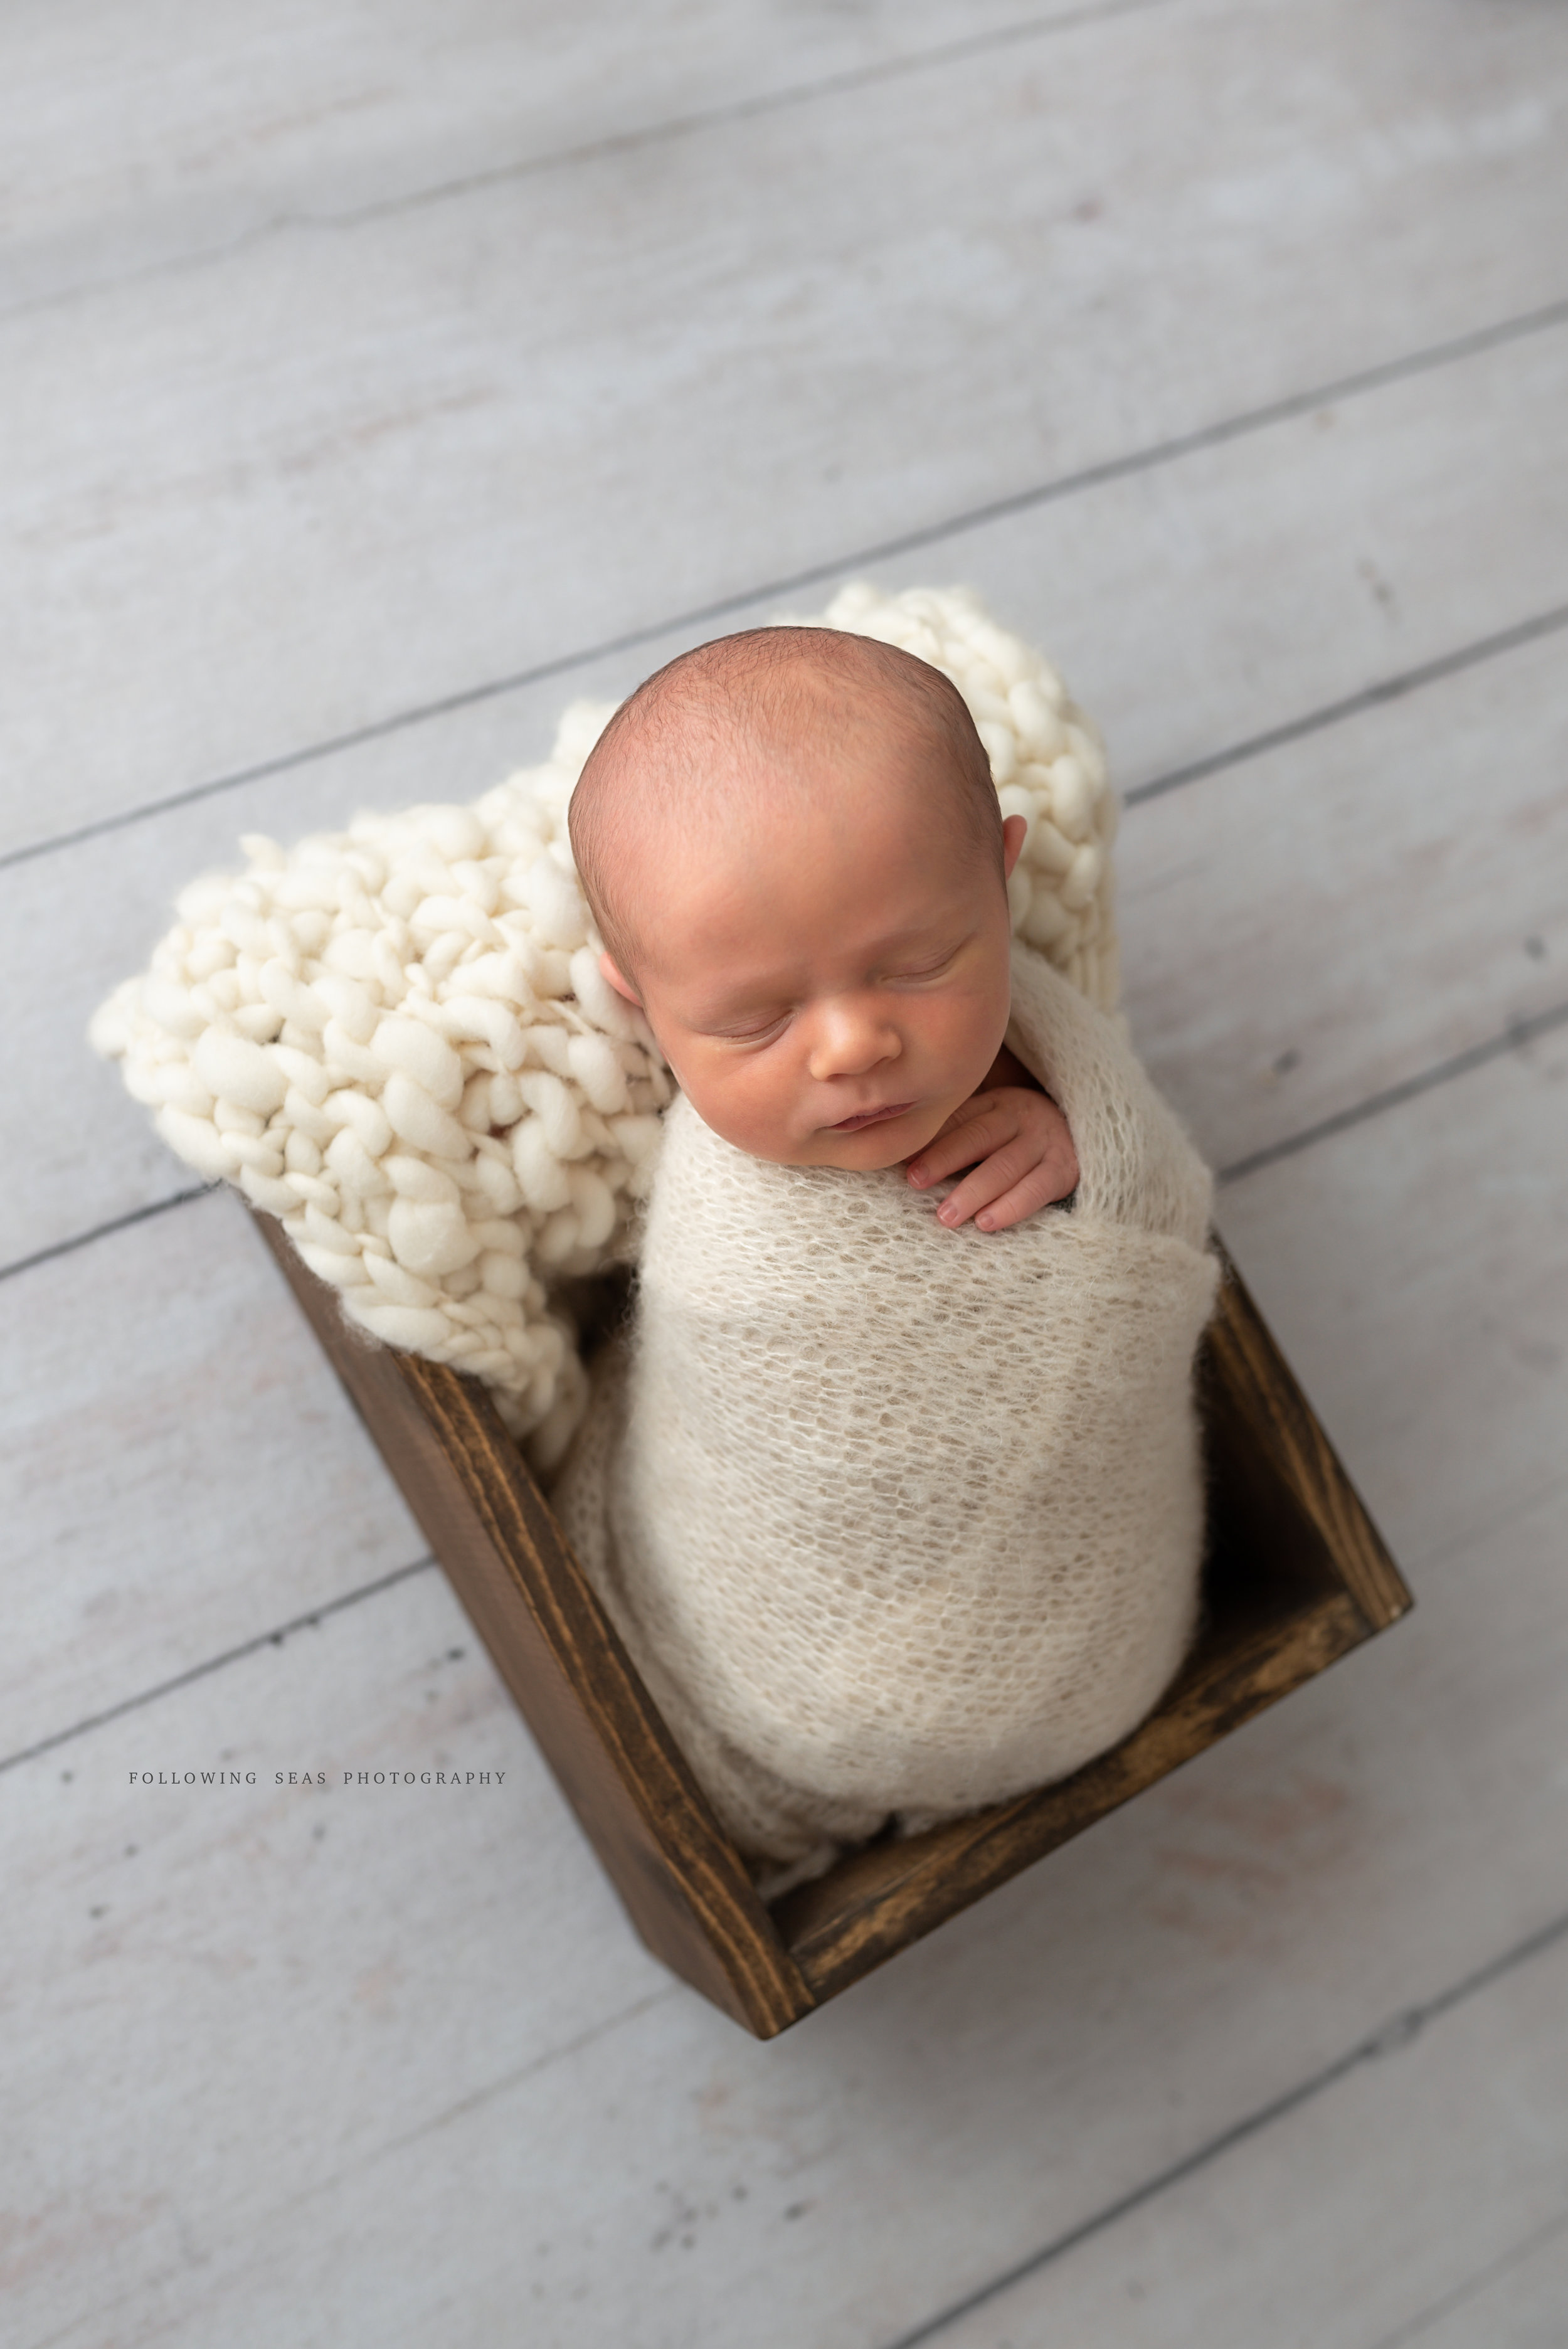 Charleston-Newborn-Photographer-Following-Seas-Photography-FSP_1334.jpg